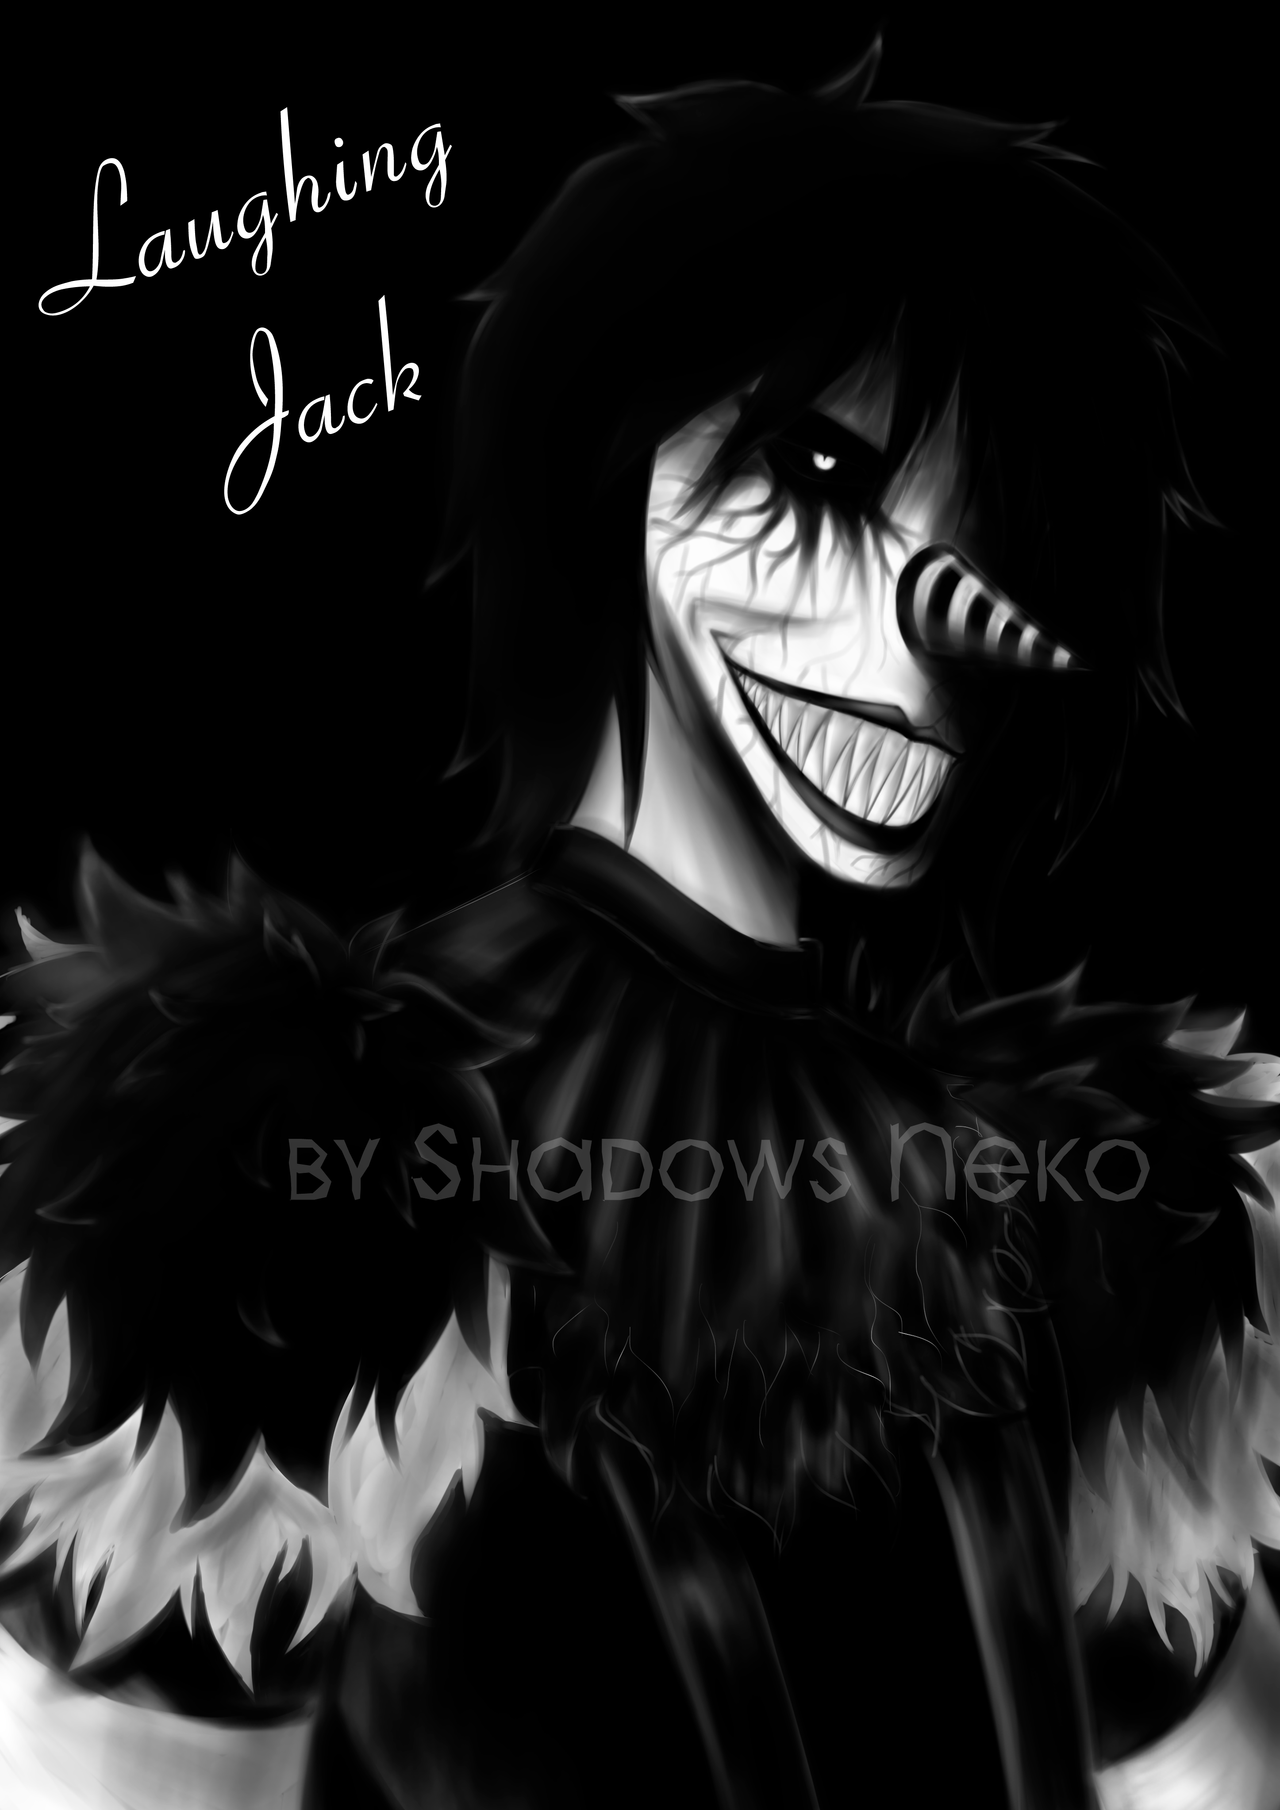 Creepy Laughing Jack by ShadowsNeko